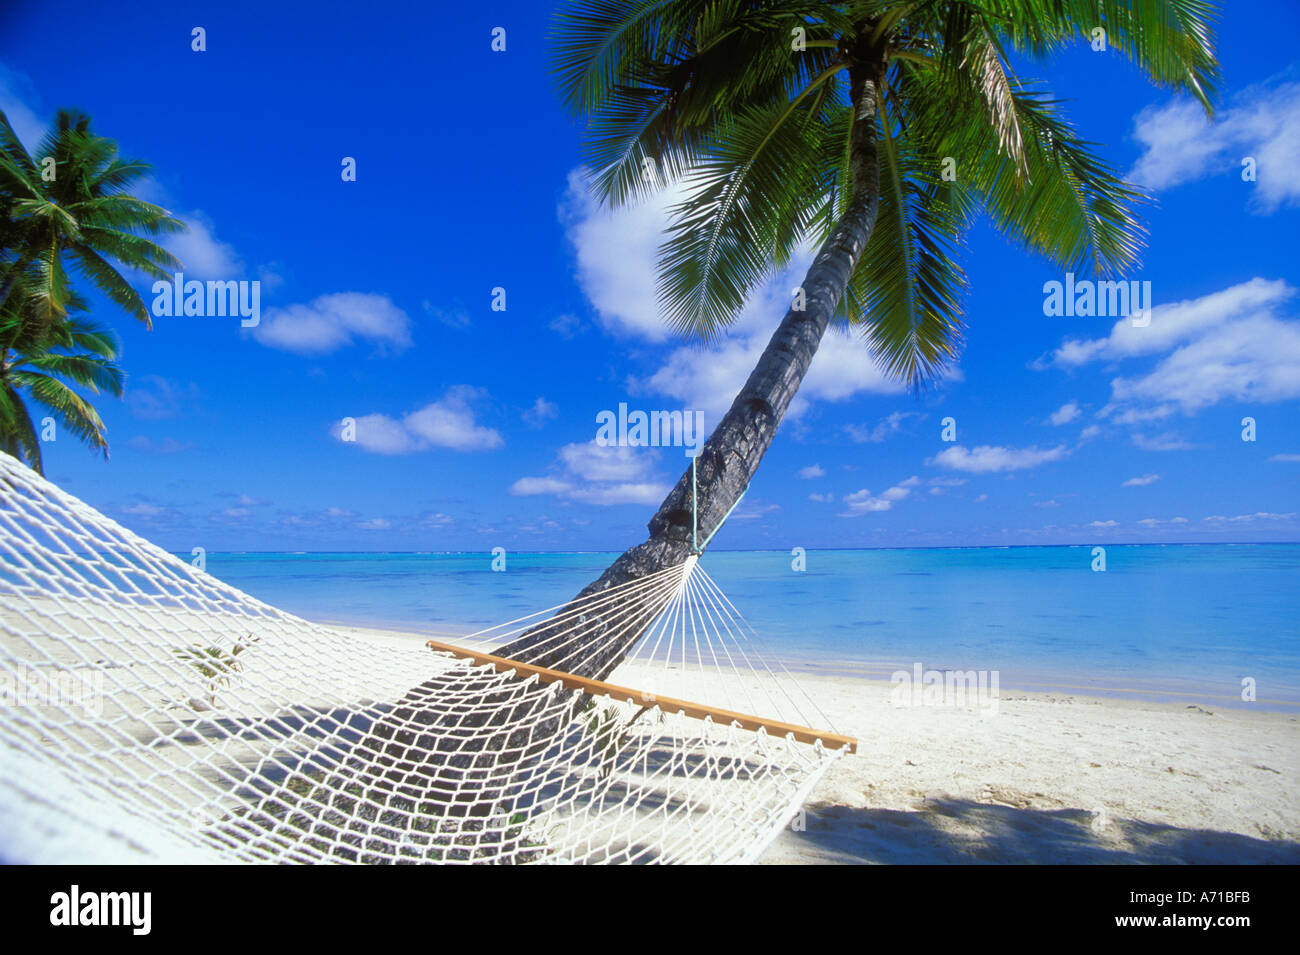 Hammock and coconut palm tree Aitutaki Cook Islands South Pacific Ocean - Stock Image